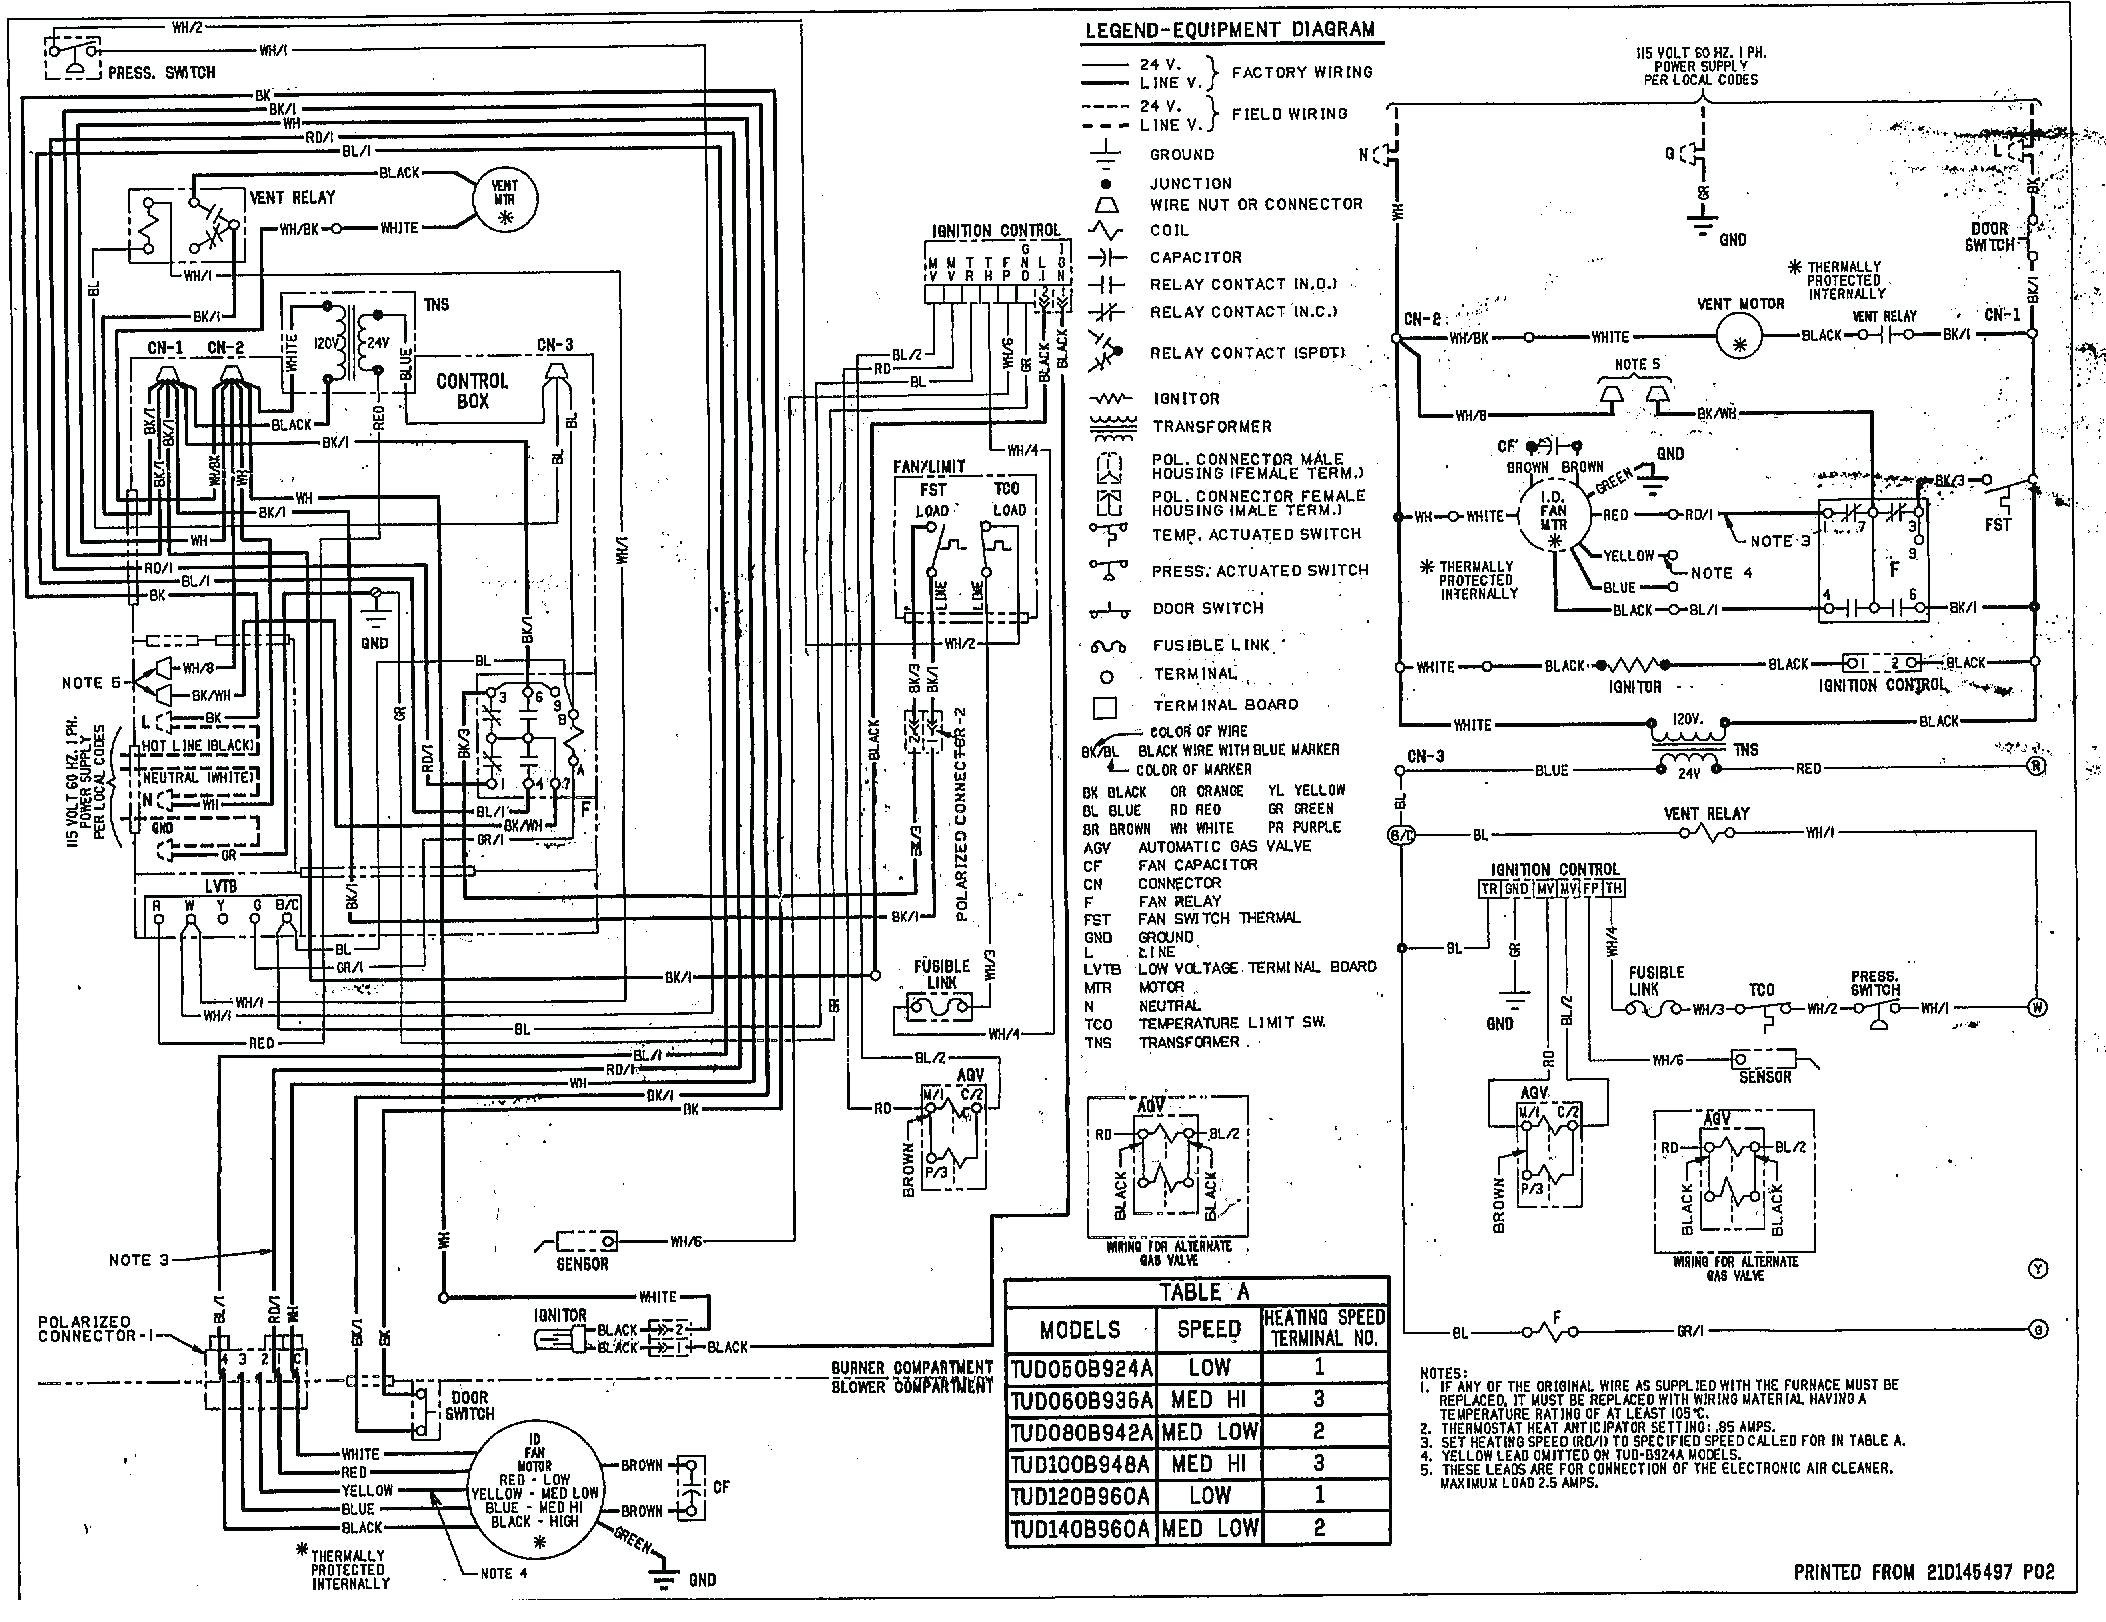 Wiring Diagram Goodman Air Handler